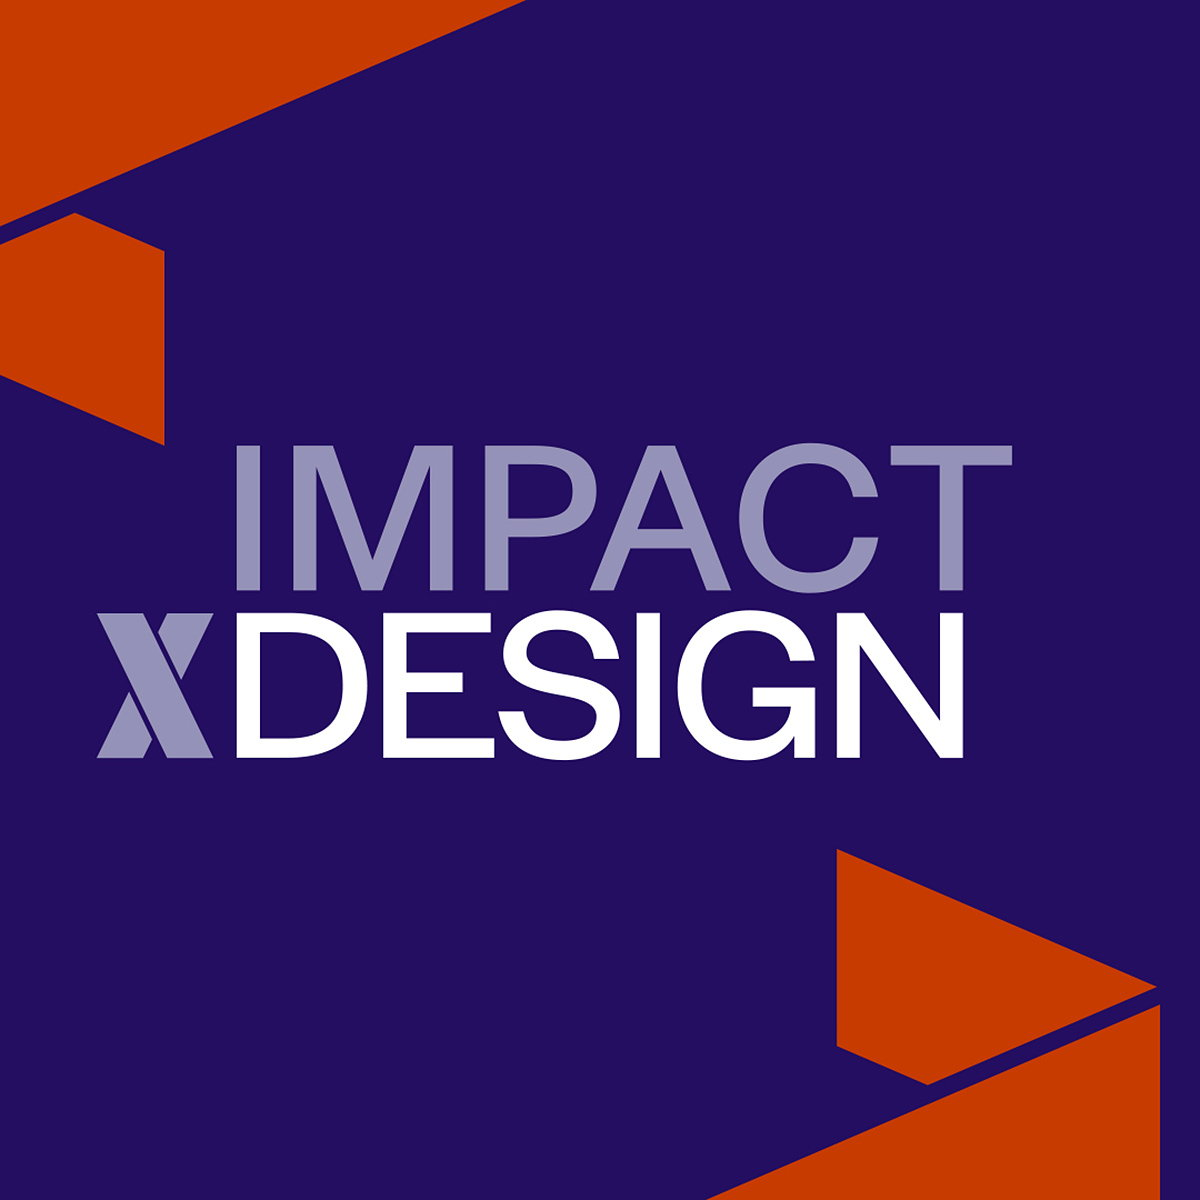 NYCxDESIGN Launches IMPACTxDESIGN Competition